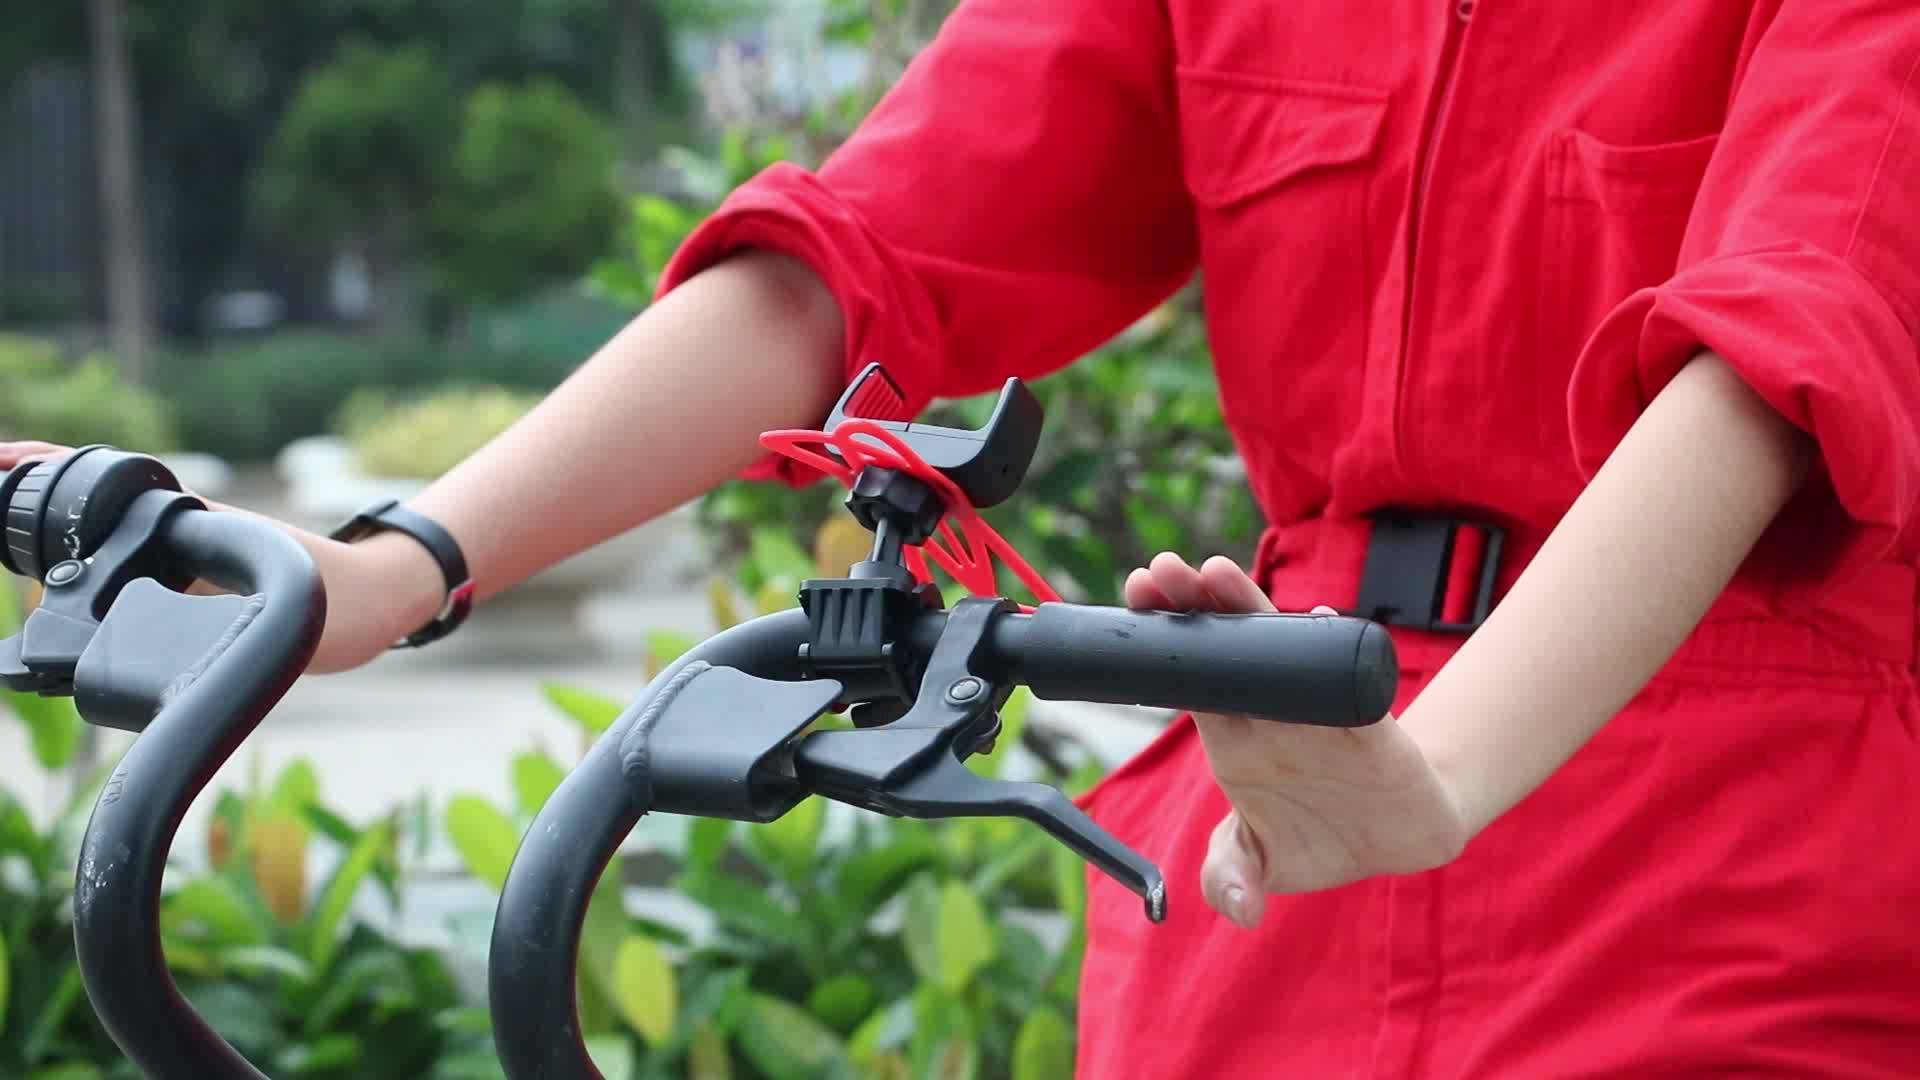 Top Inquires Blank Phone Grips Motorized Mount 360 Phone Holder Bike